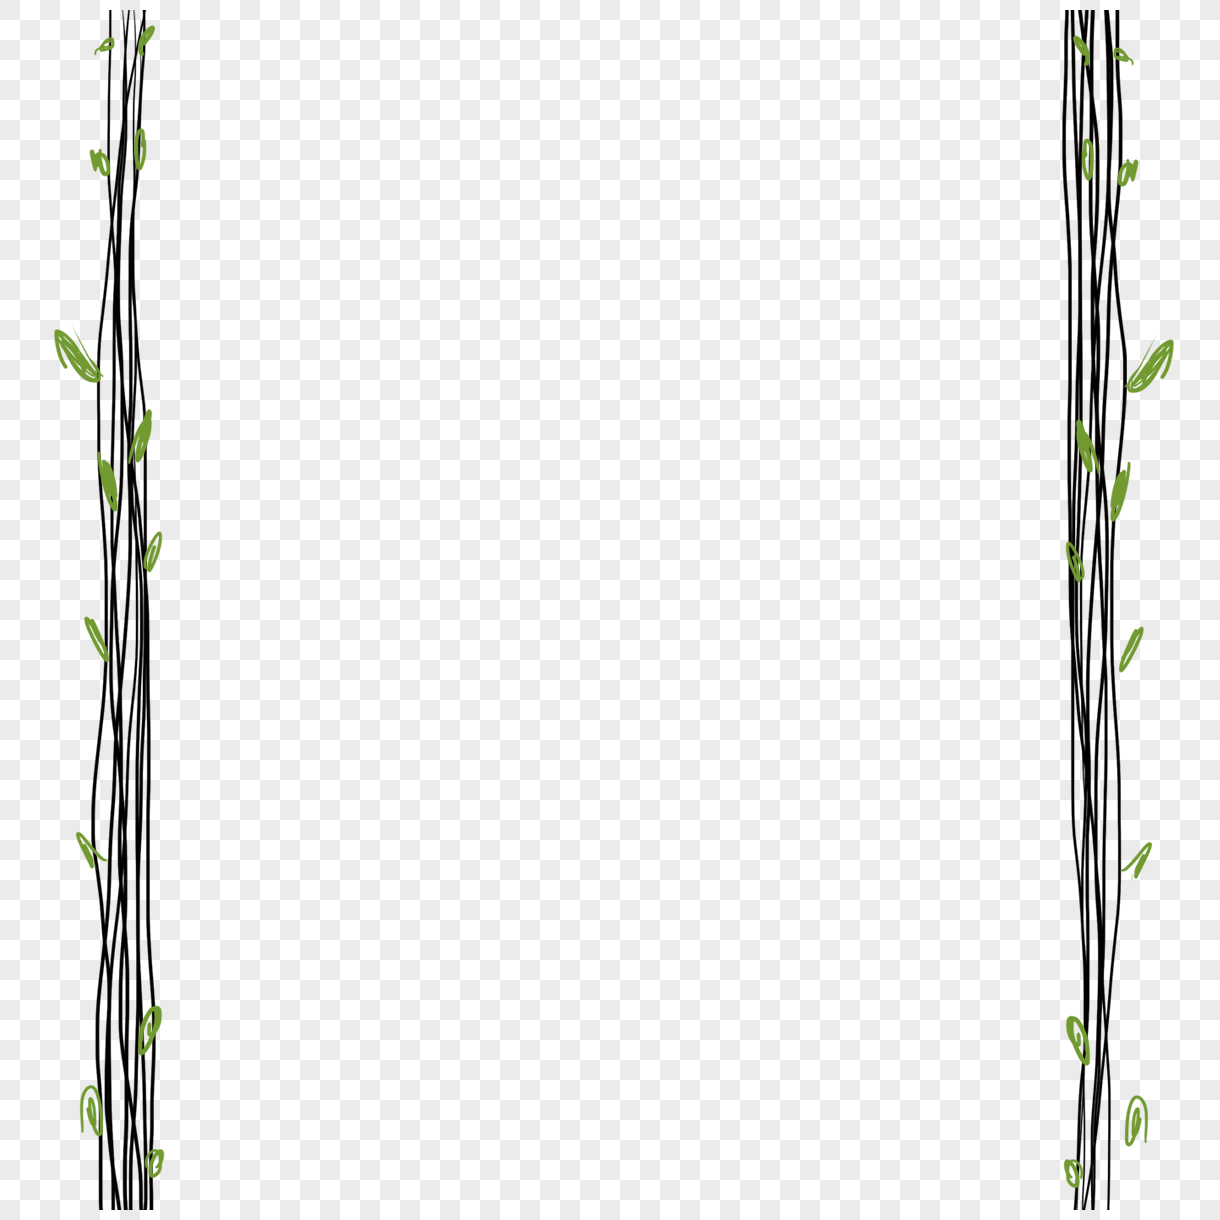 hand painted small fresh and simple rattan frame png image picture